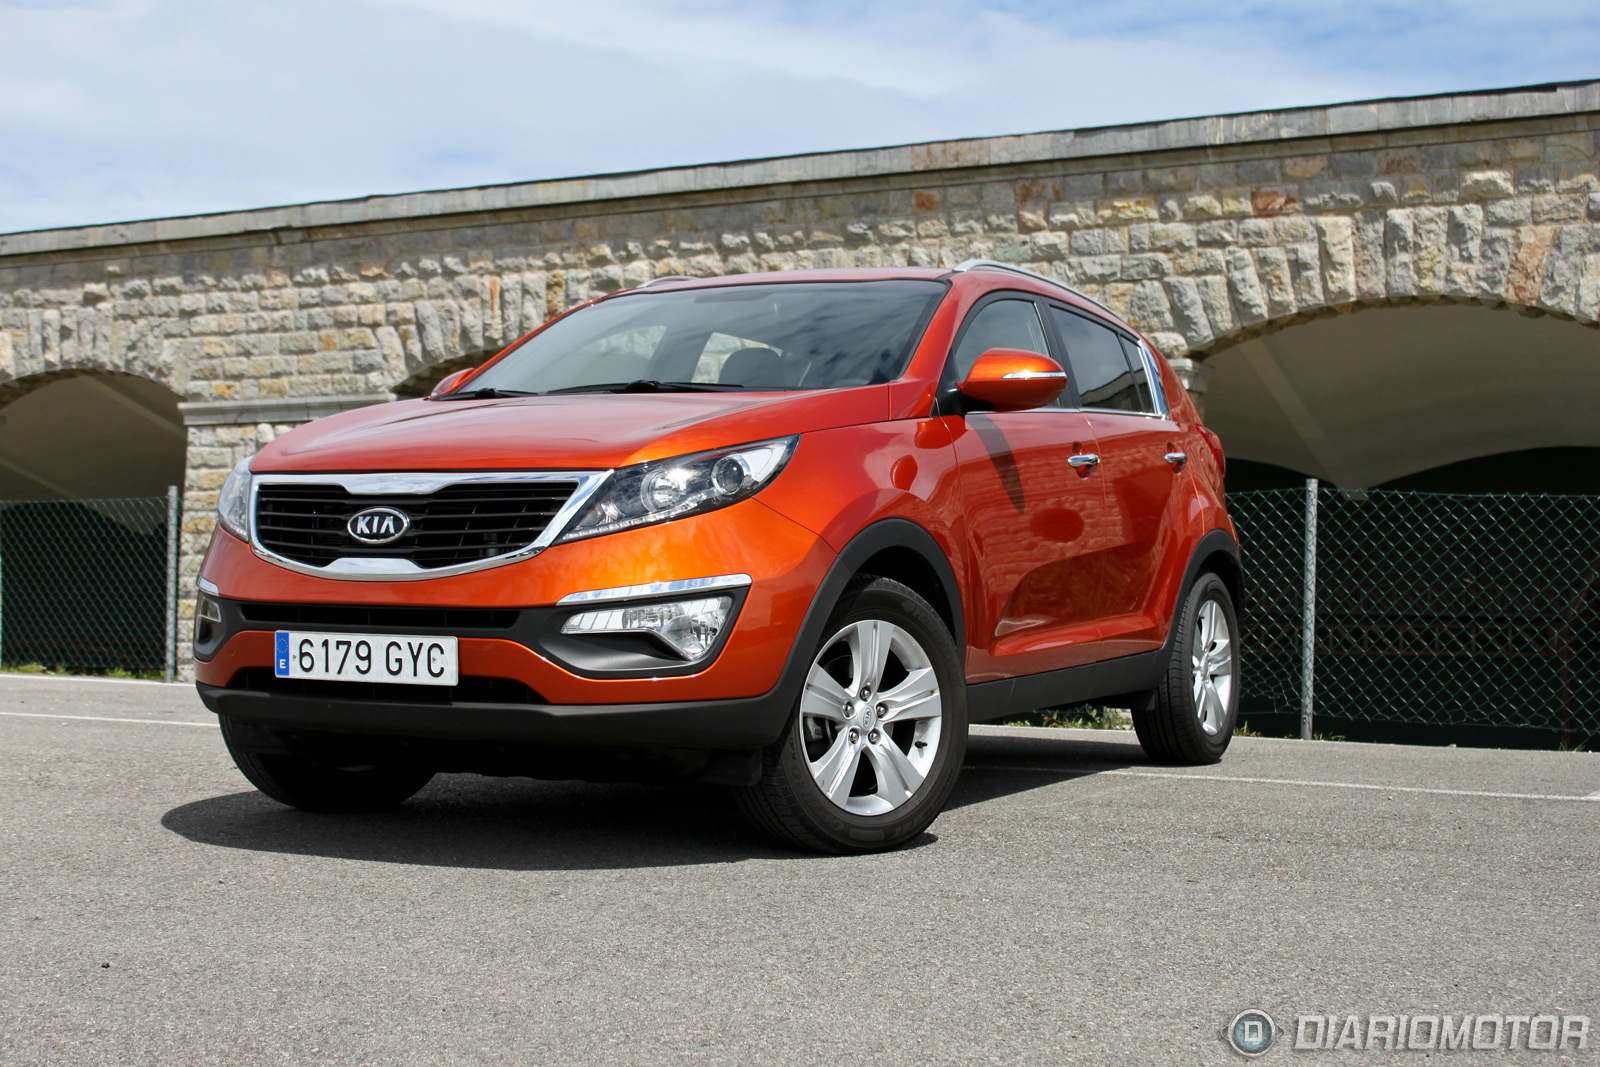 kia sportage 2 0 crdi 4 2 drive a prueba i diariomotor. Black Bedroom Furniture Sets. Home Design Ideas